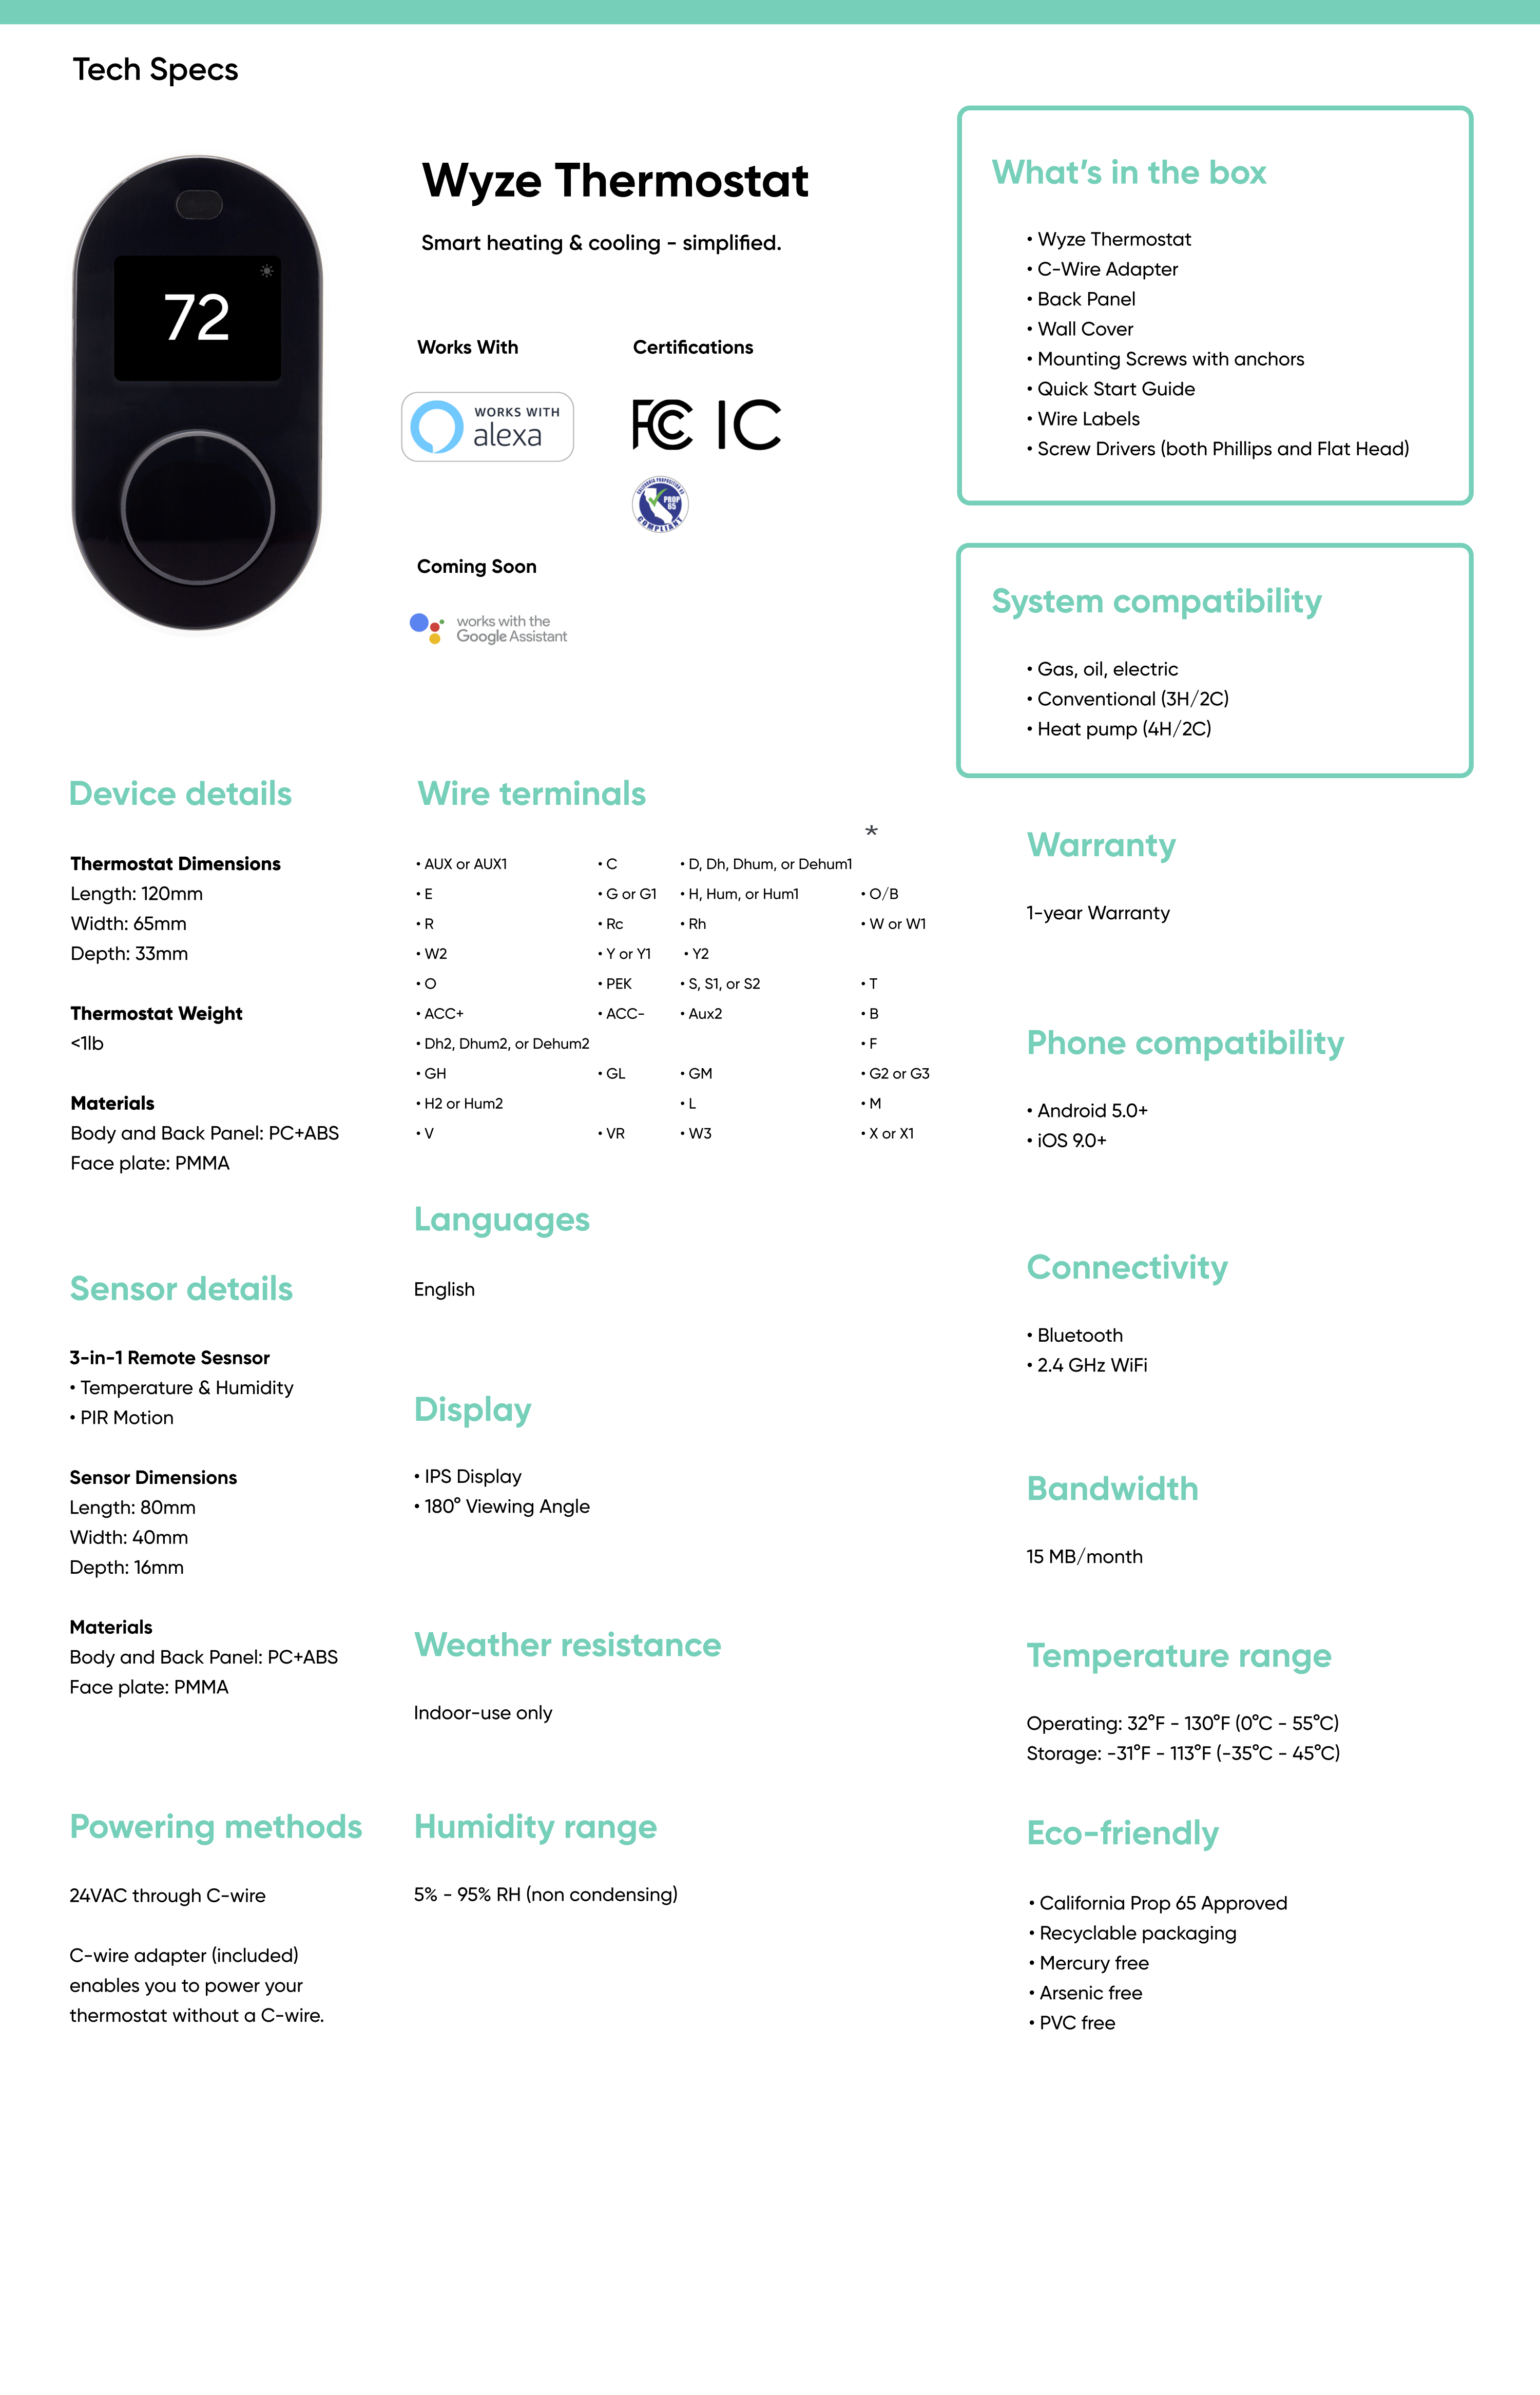 Wyze_Thermostat_Tech_Specs.png